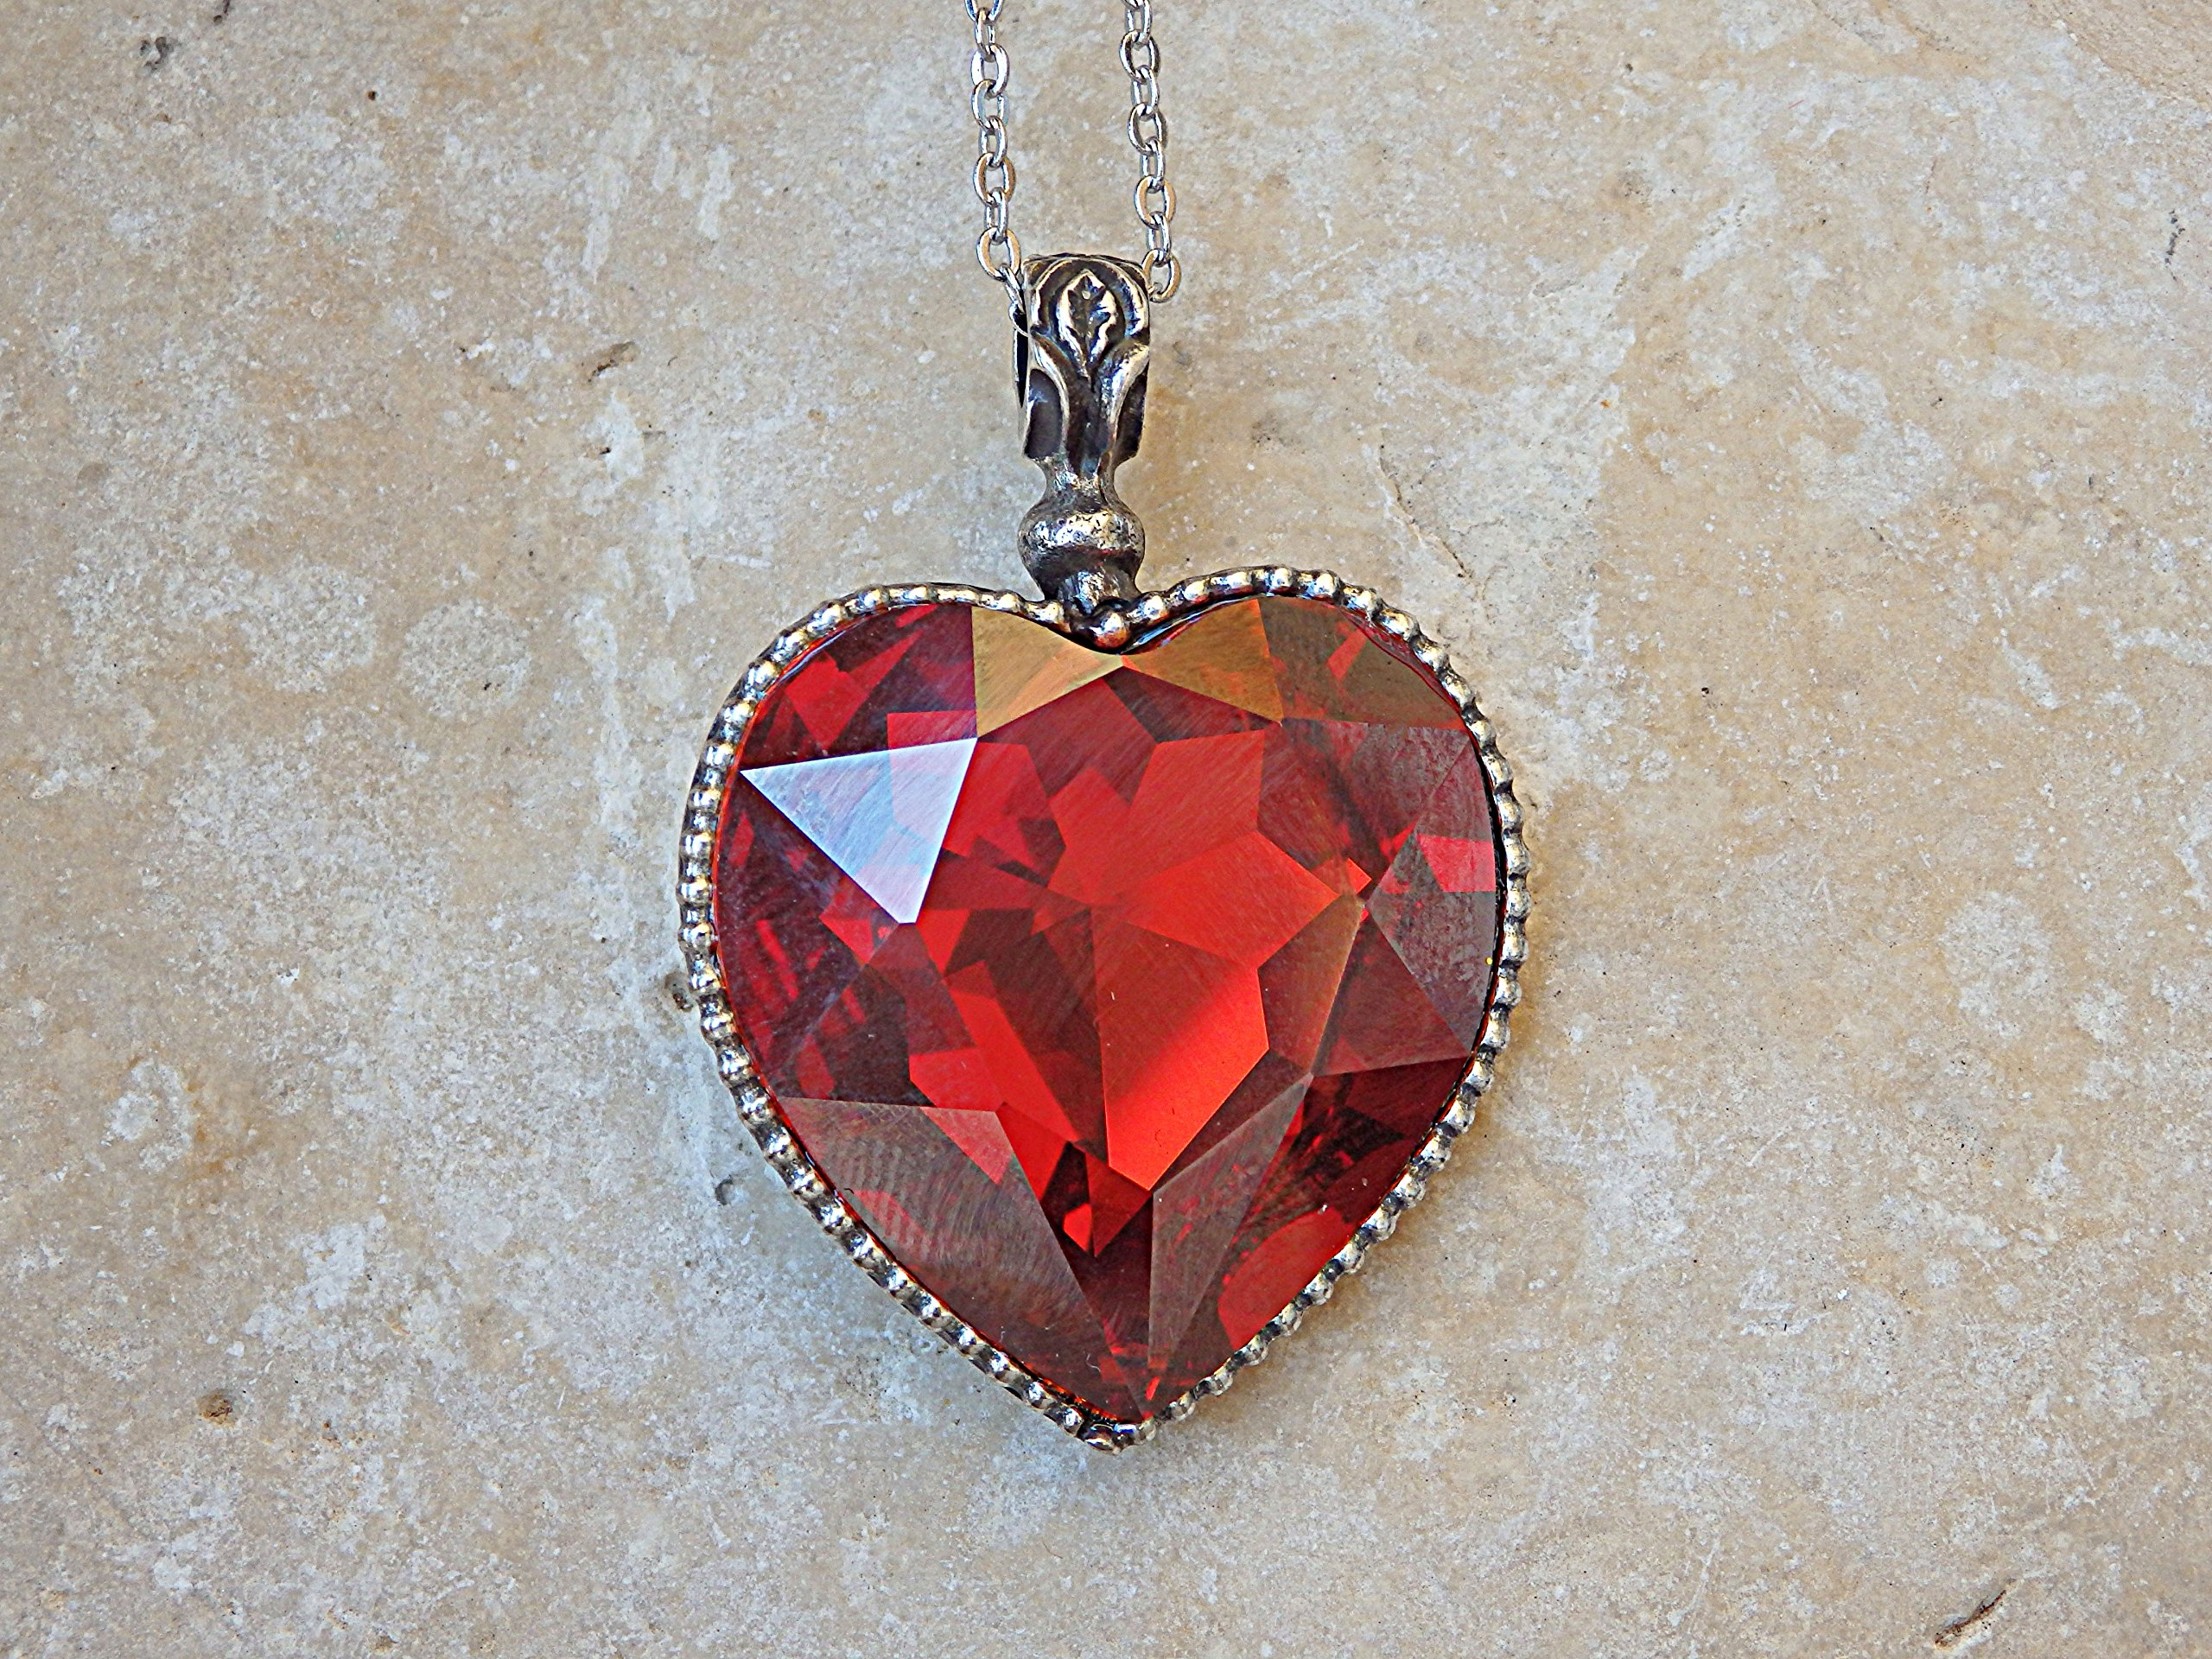 Rebeka jewelry Anniversary wife girlfriend jewelry gift. Red Heart Shaped Necklace, Ruby Swarovski Heart Necklace, Heart Jewelry, Silver or gold Necklace,